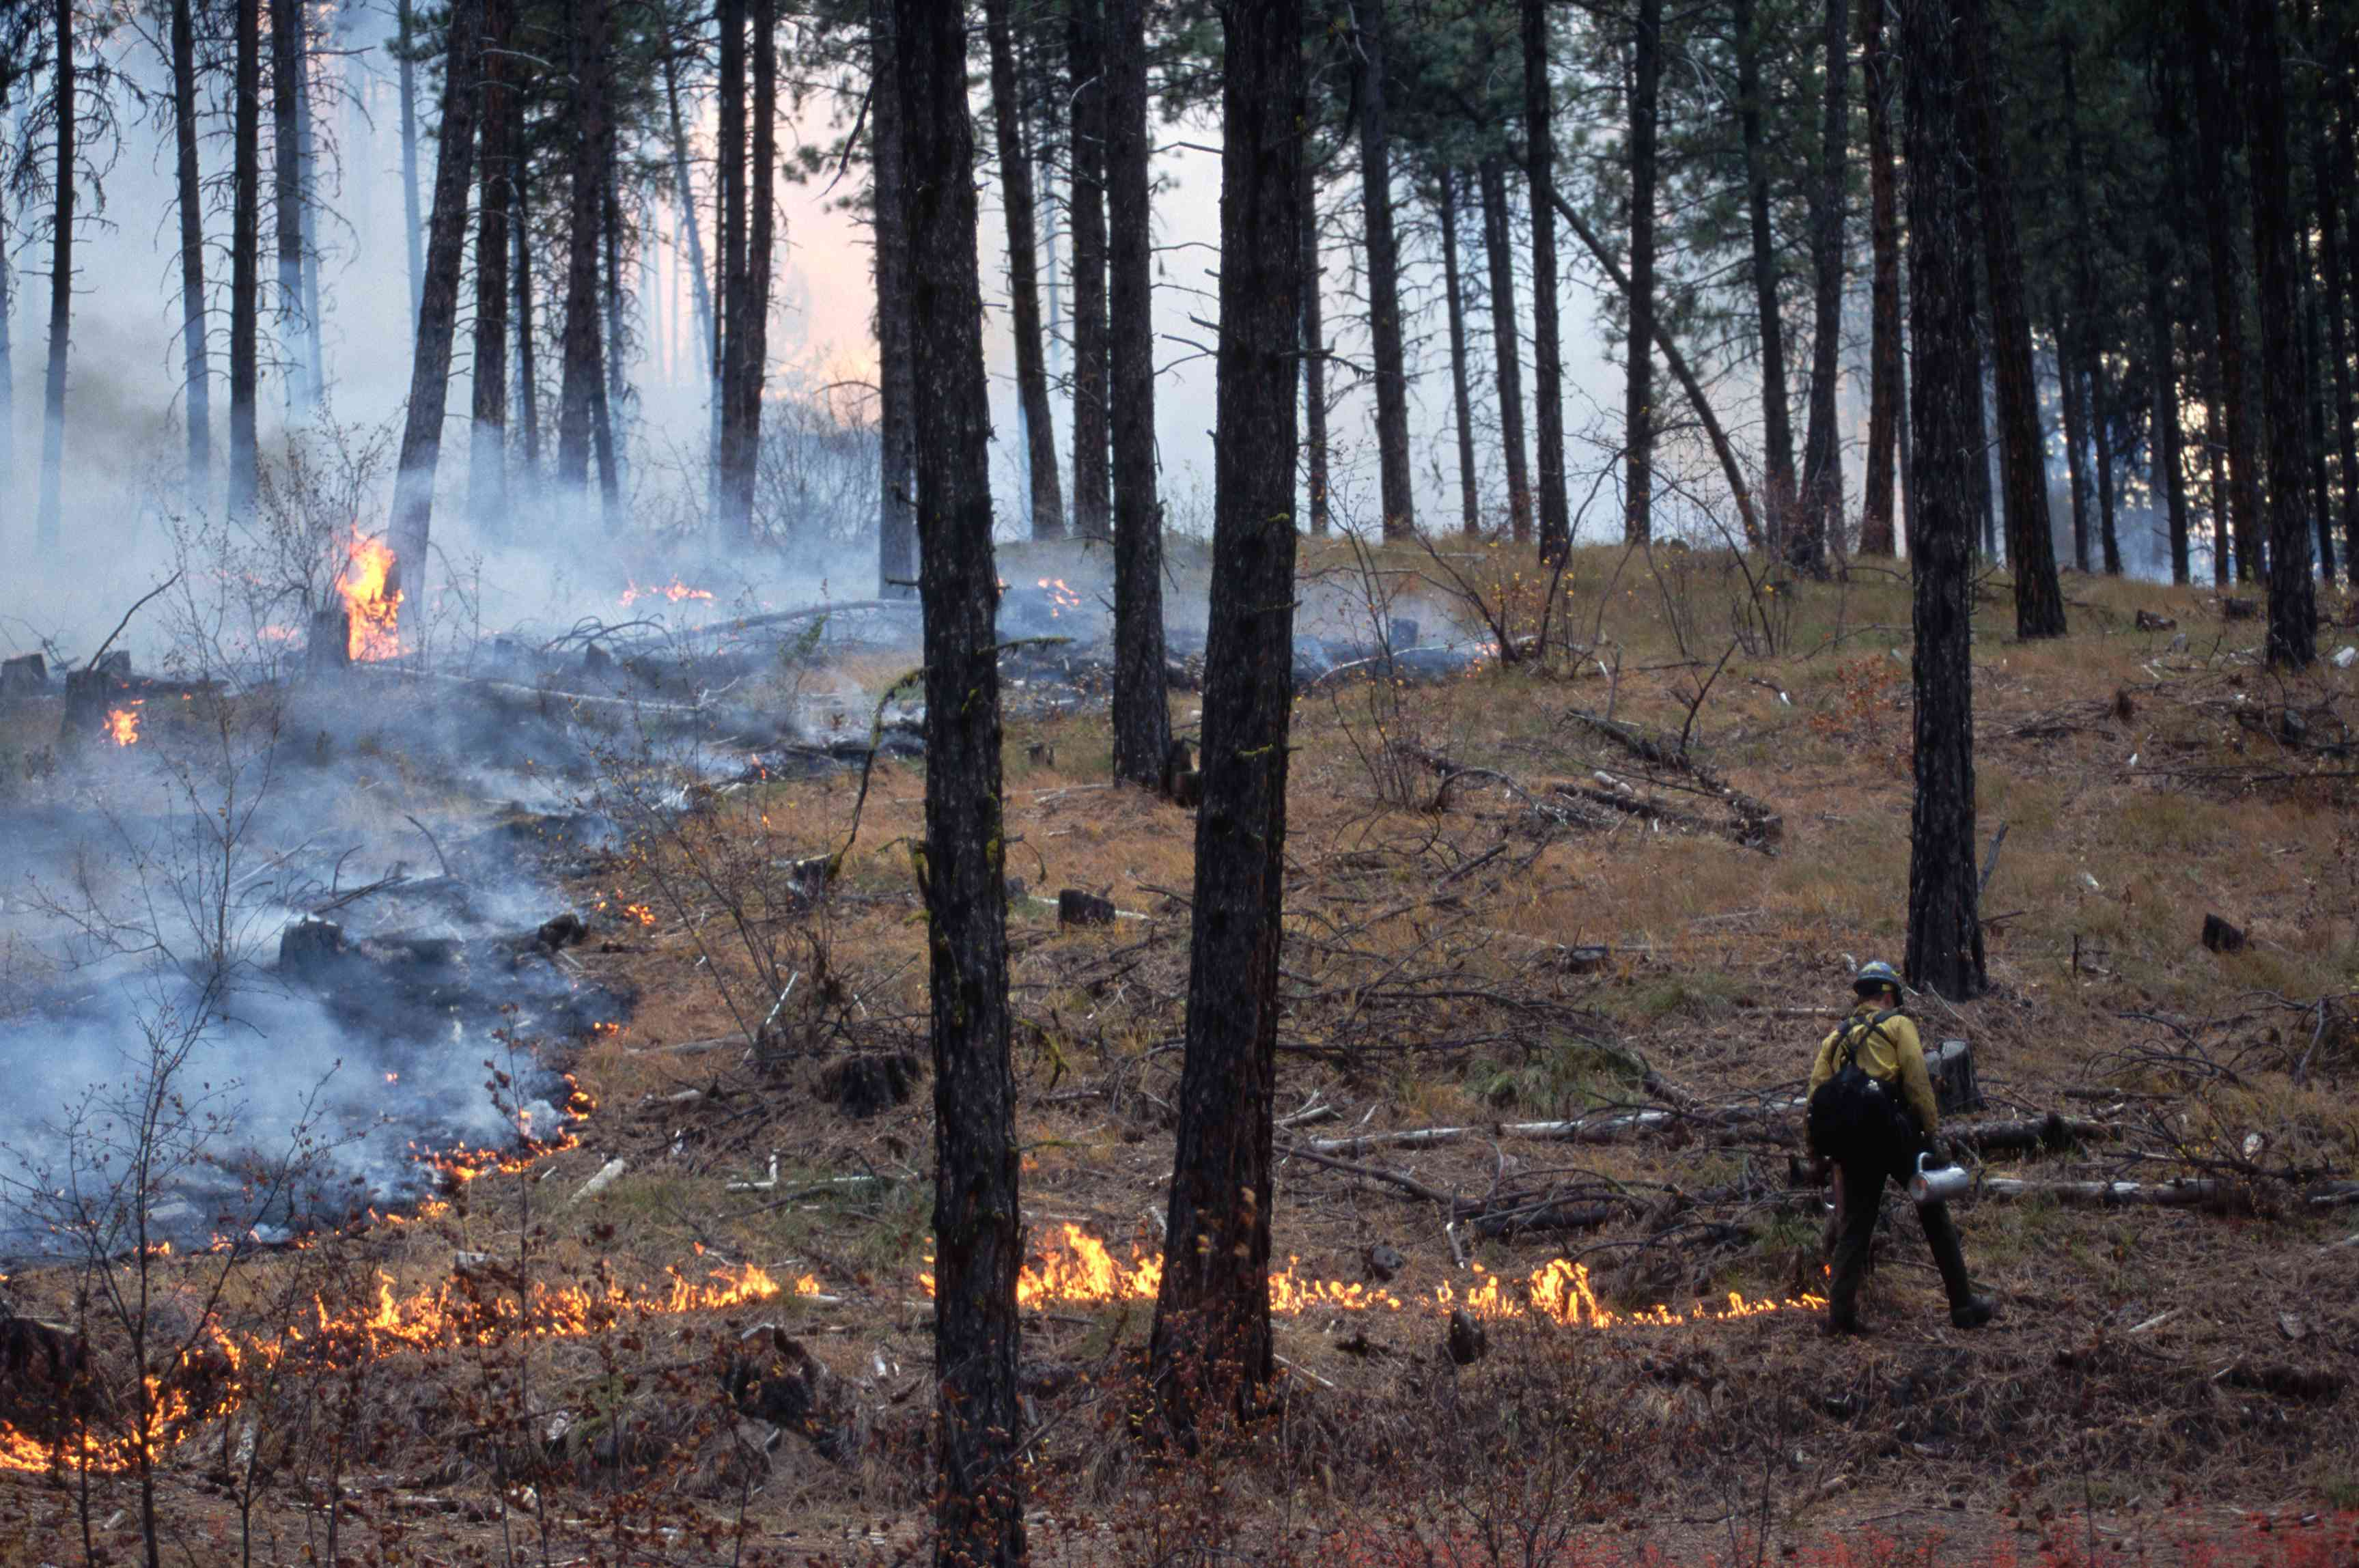 Forest Worker Conducting a Controlled Burn